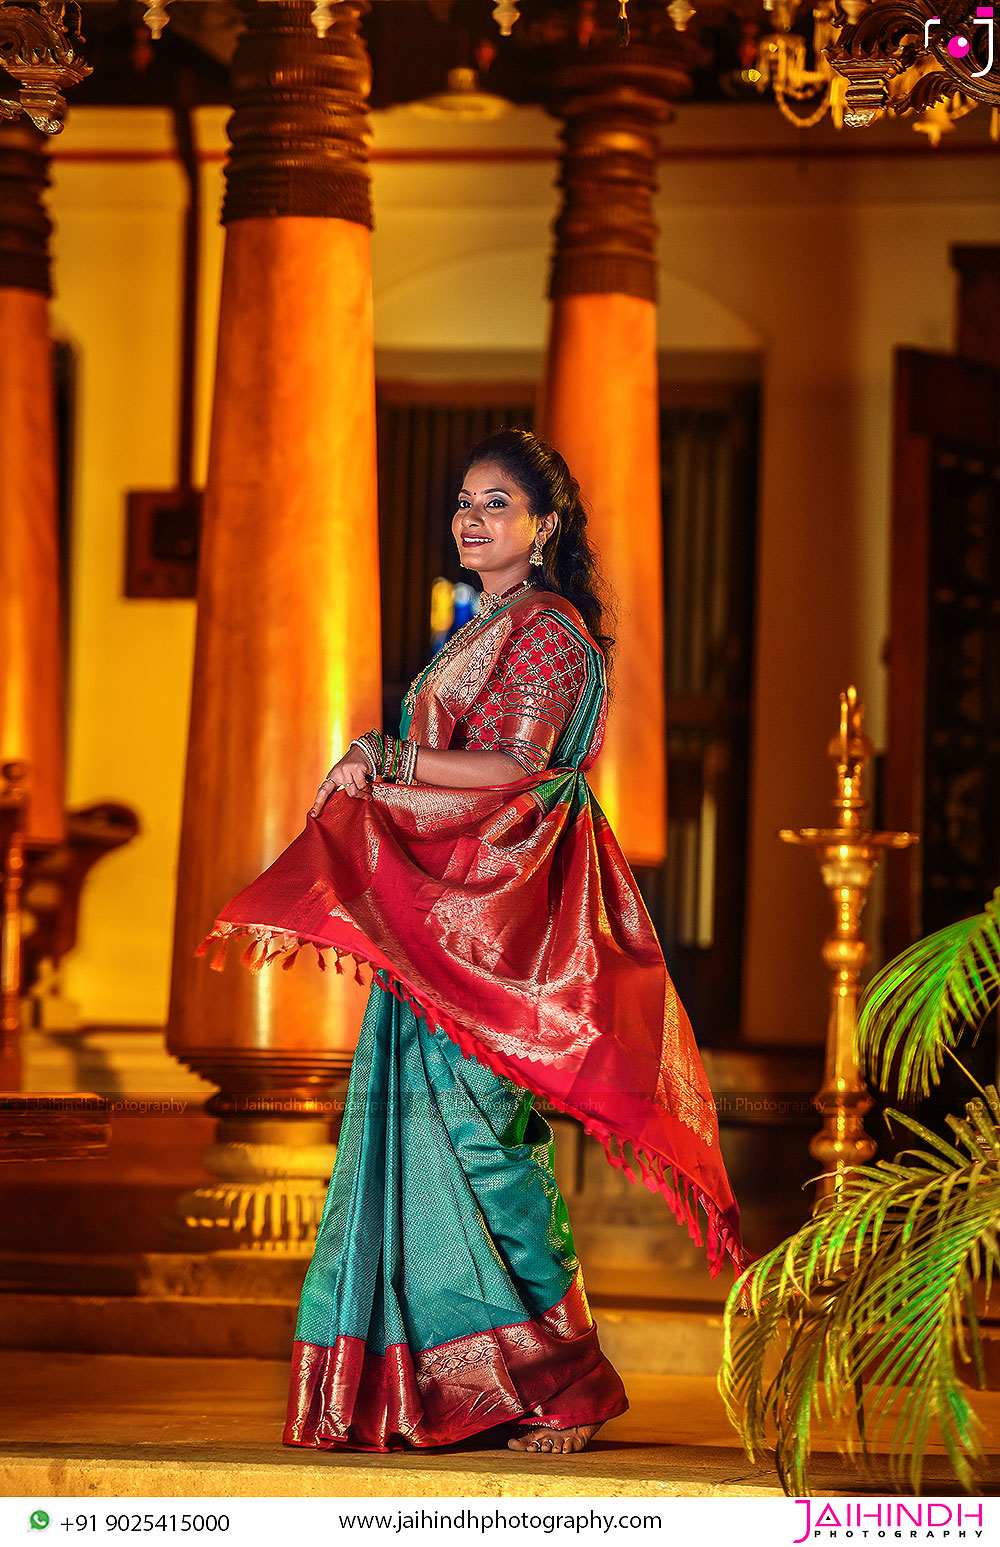 Best Candid Photographers In Namakkal, Candid Wedding Photographers In Namakkal, Candid Photography In Namakkal, Candid Wedding Photography In Namakkal